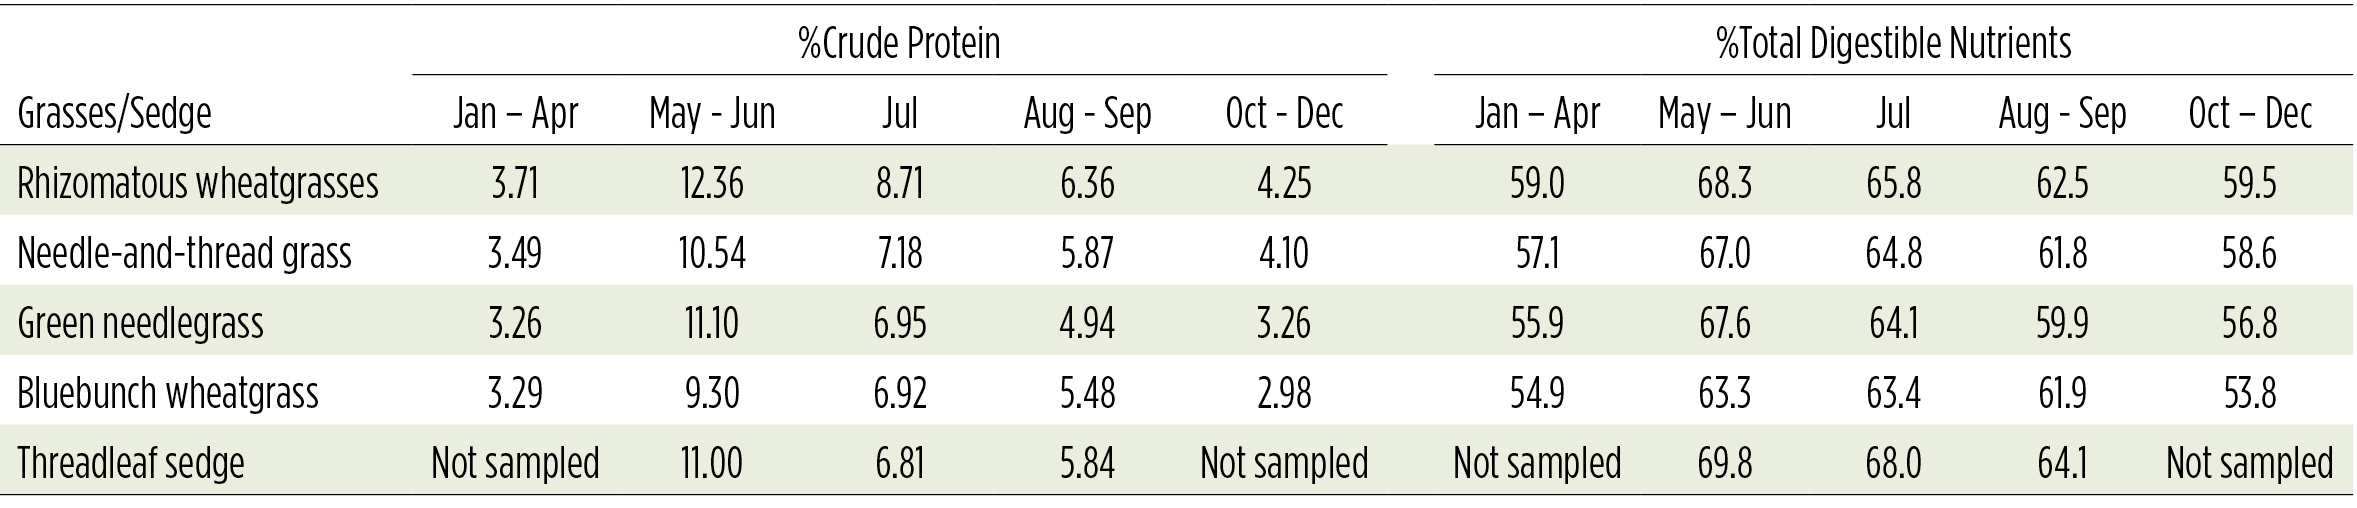 table showing % crude protein and % total digestible nutrients for various grasses and sedges